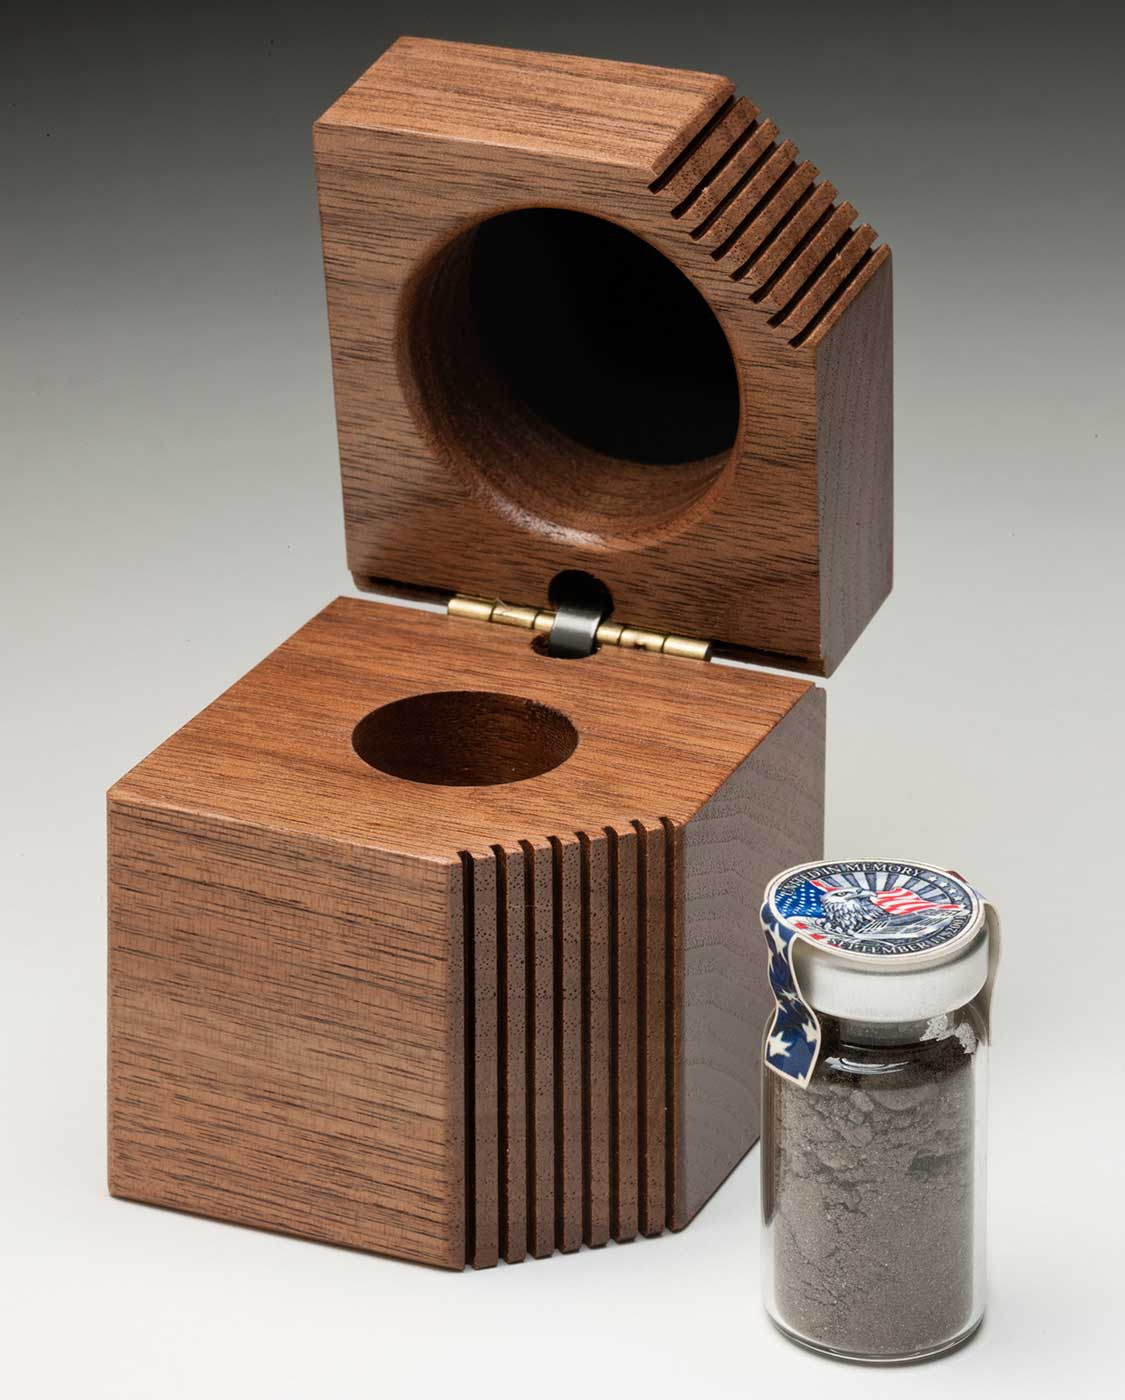 An opened timber box with a small glass vial filled with soil. - click to view larger image